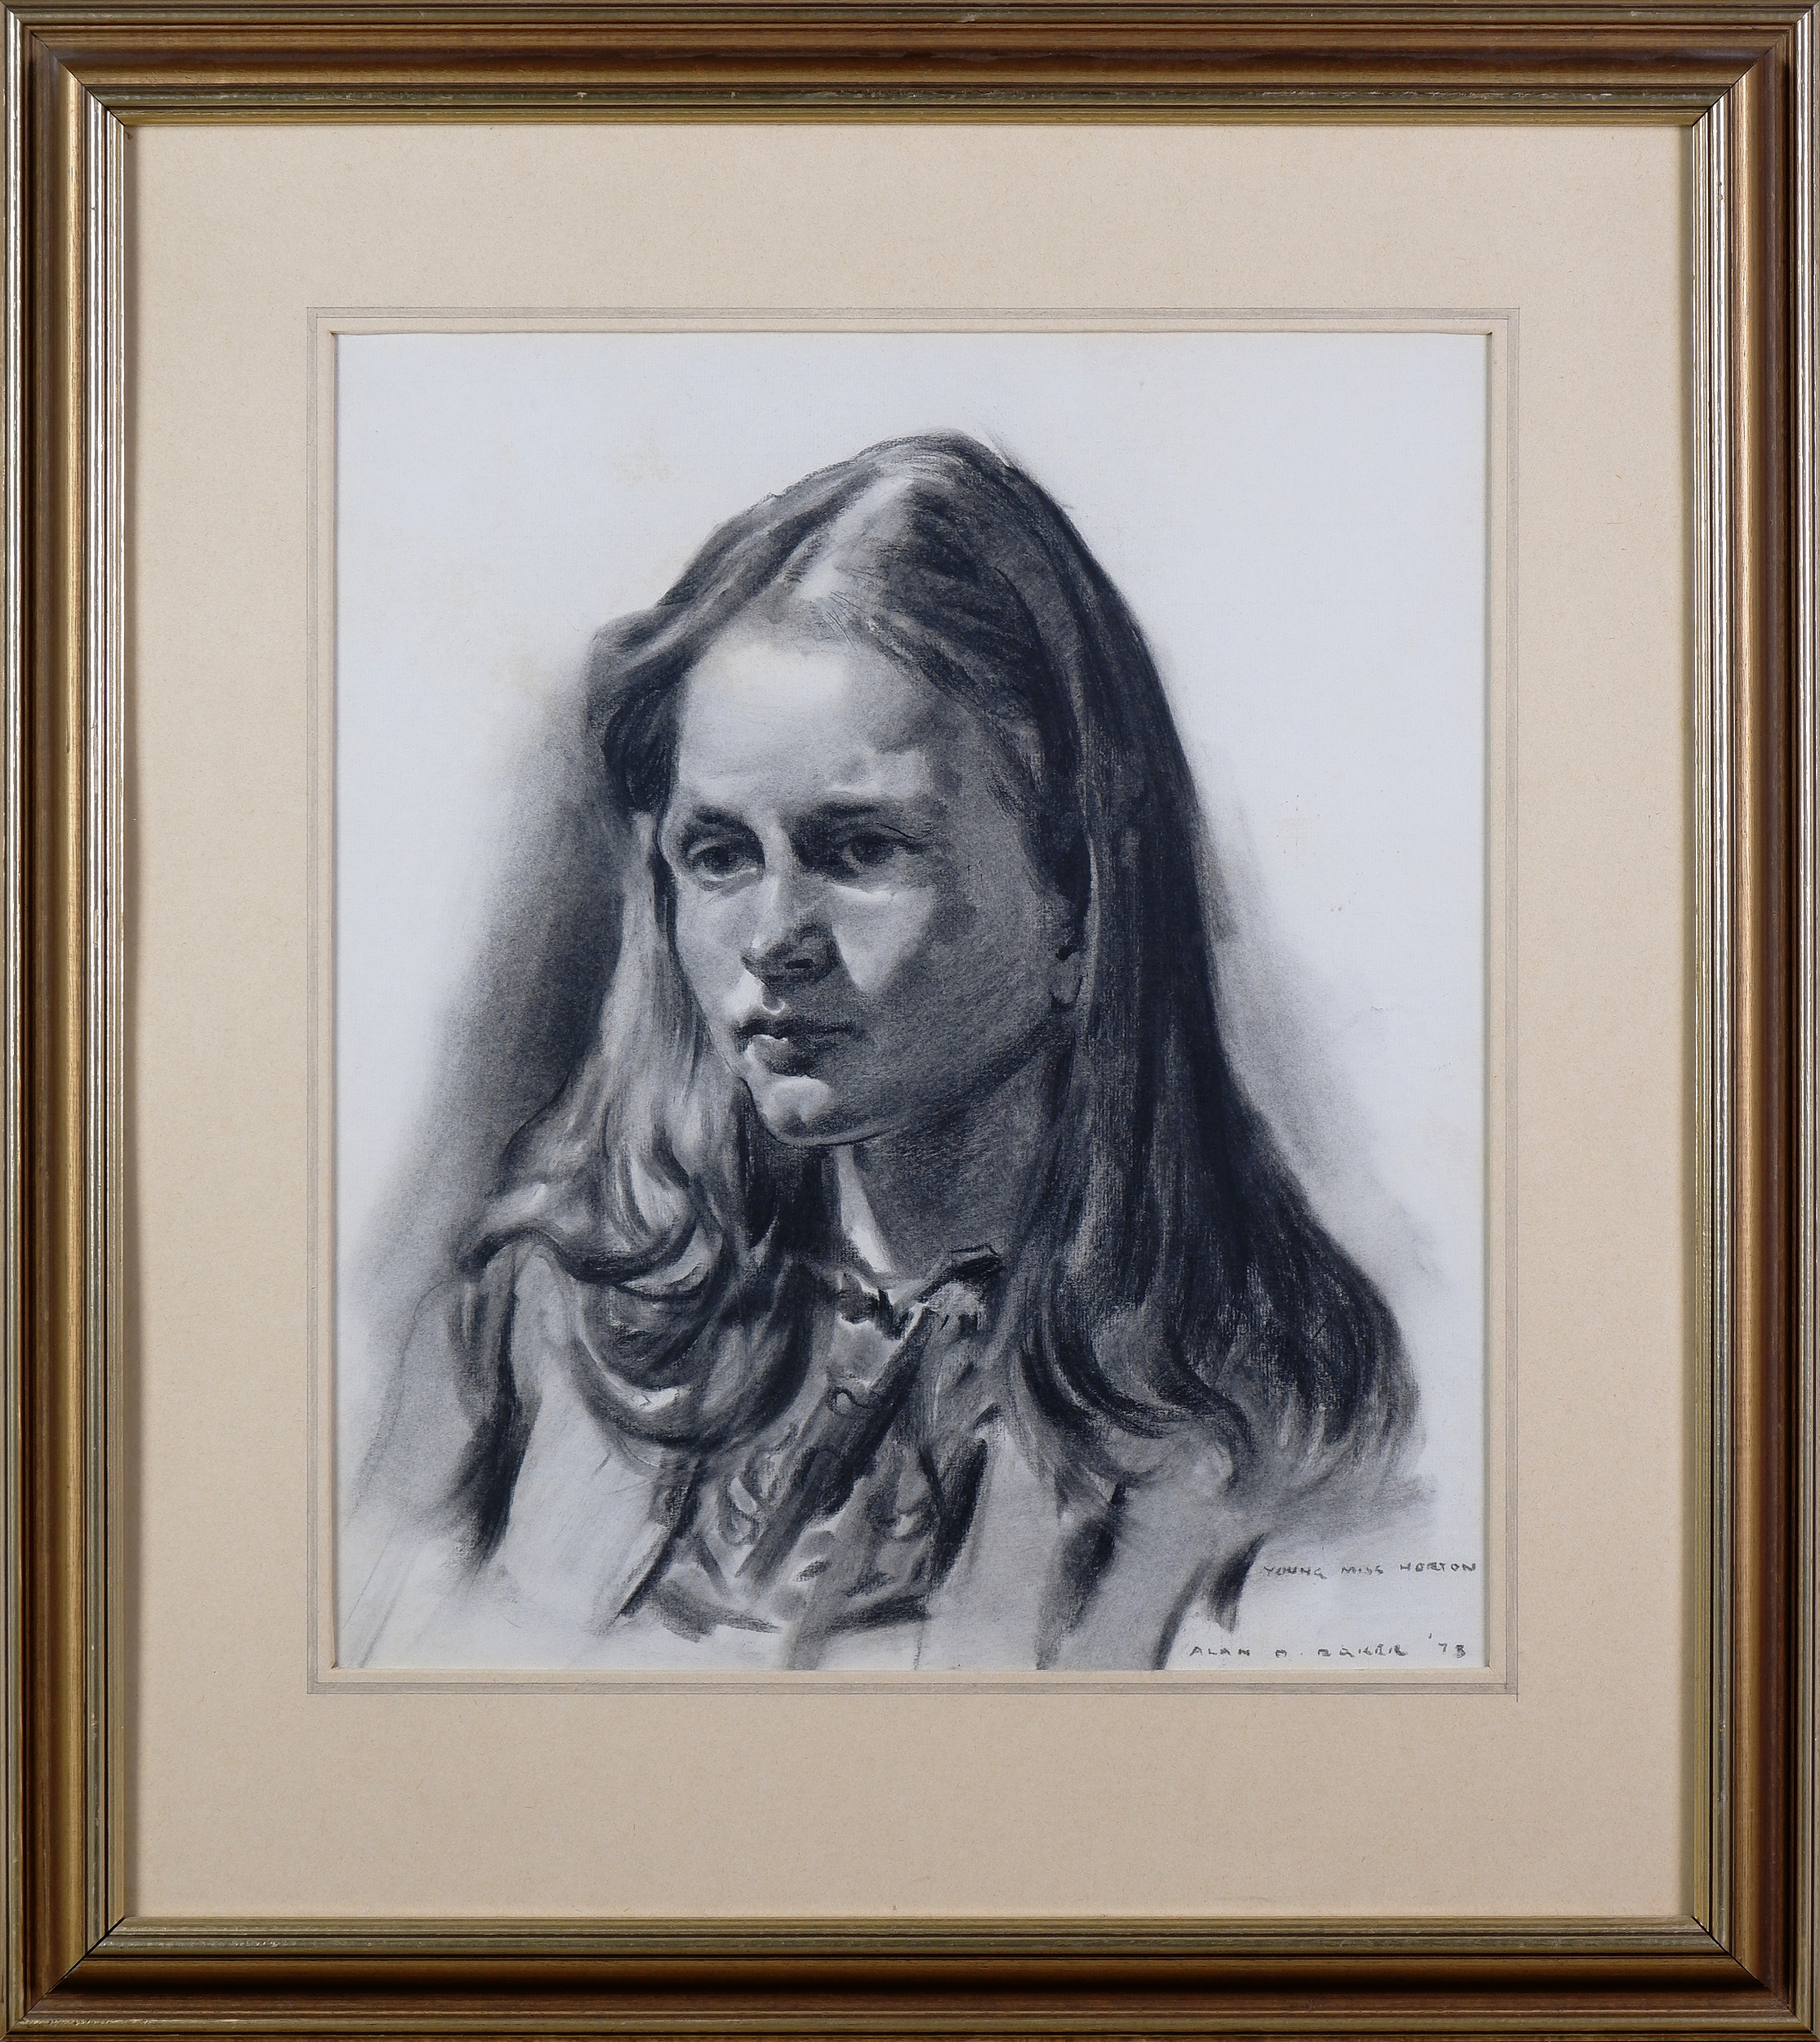 'Alan Baker (1914-1987), Charcoal Study (Young Miss Horton) 1973, Charcoal on Paper'